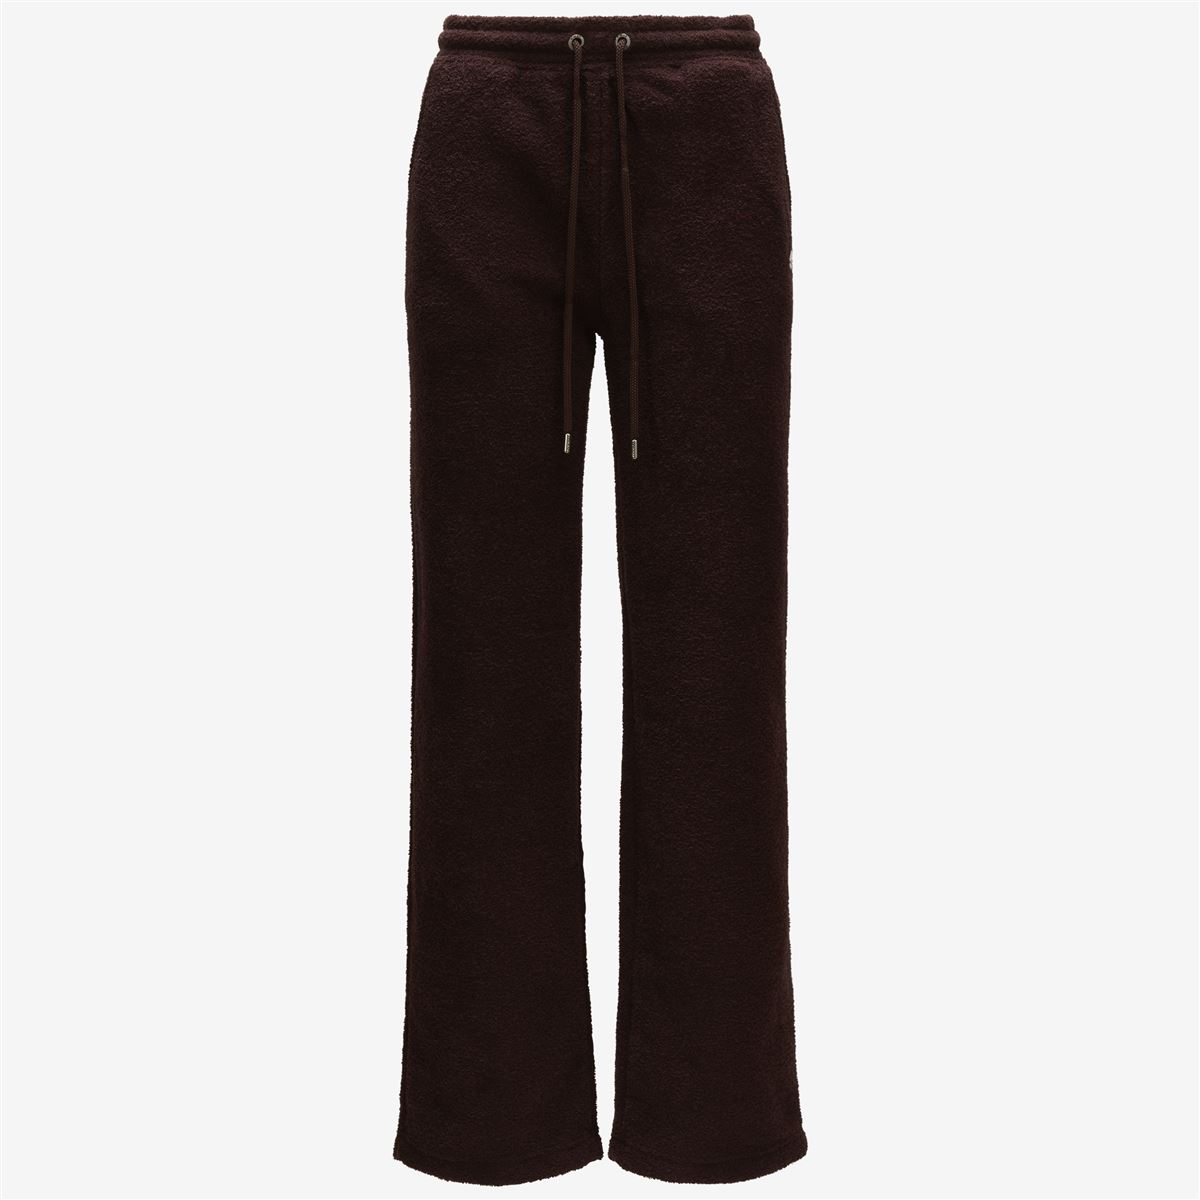 K-Way Pants LUCIE BOUCLE FLEECE Woman Sport Trousers